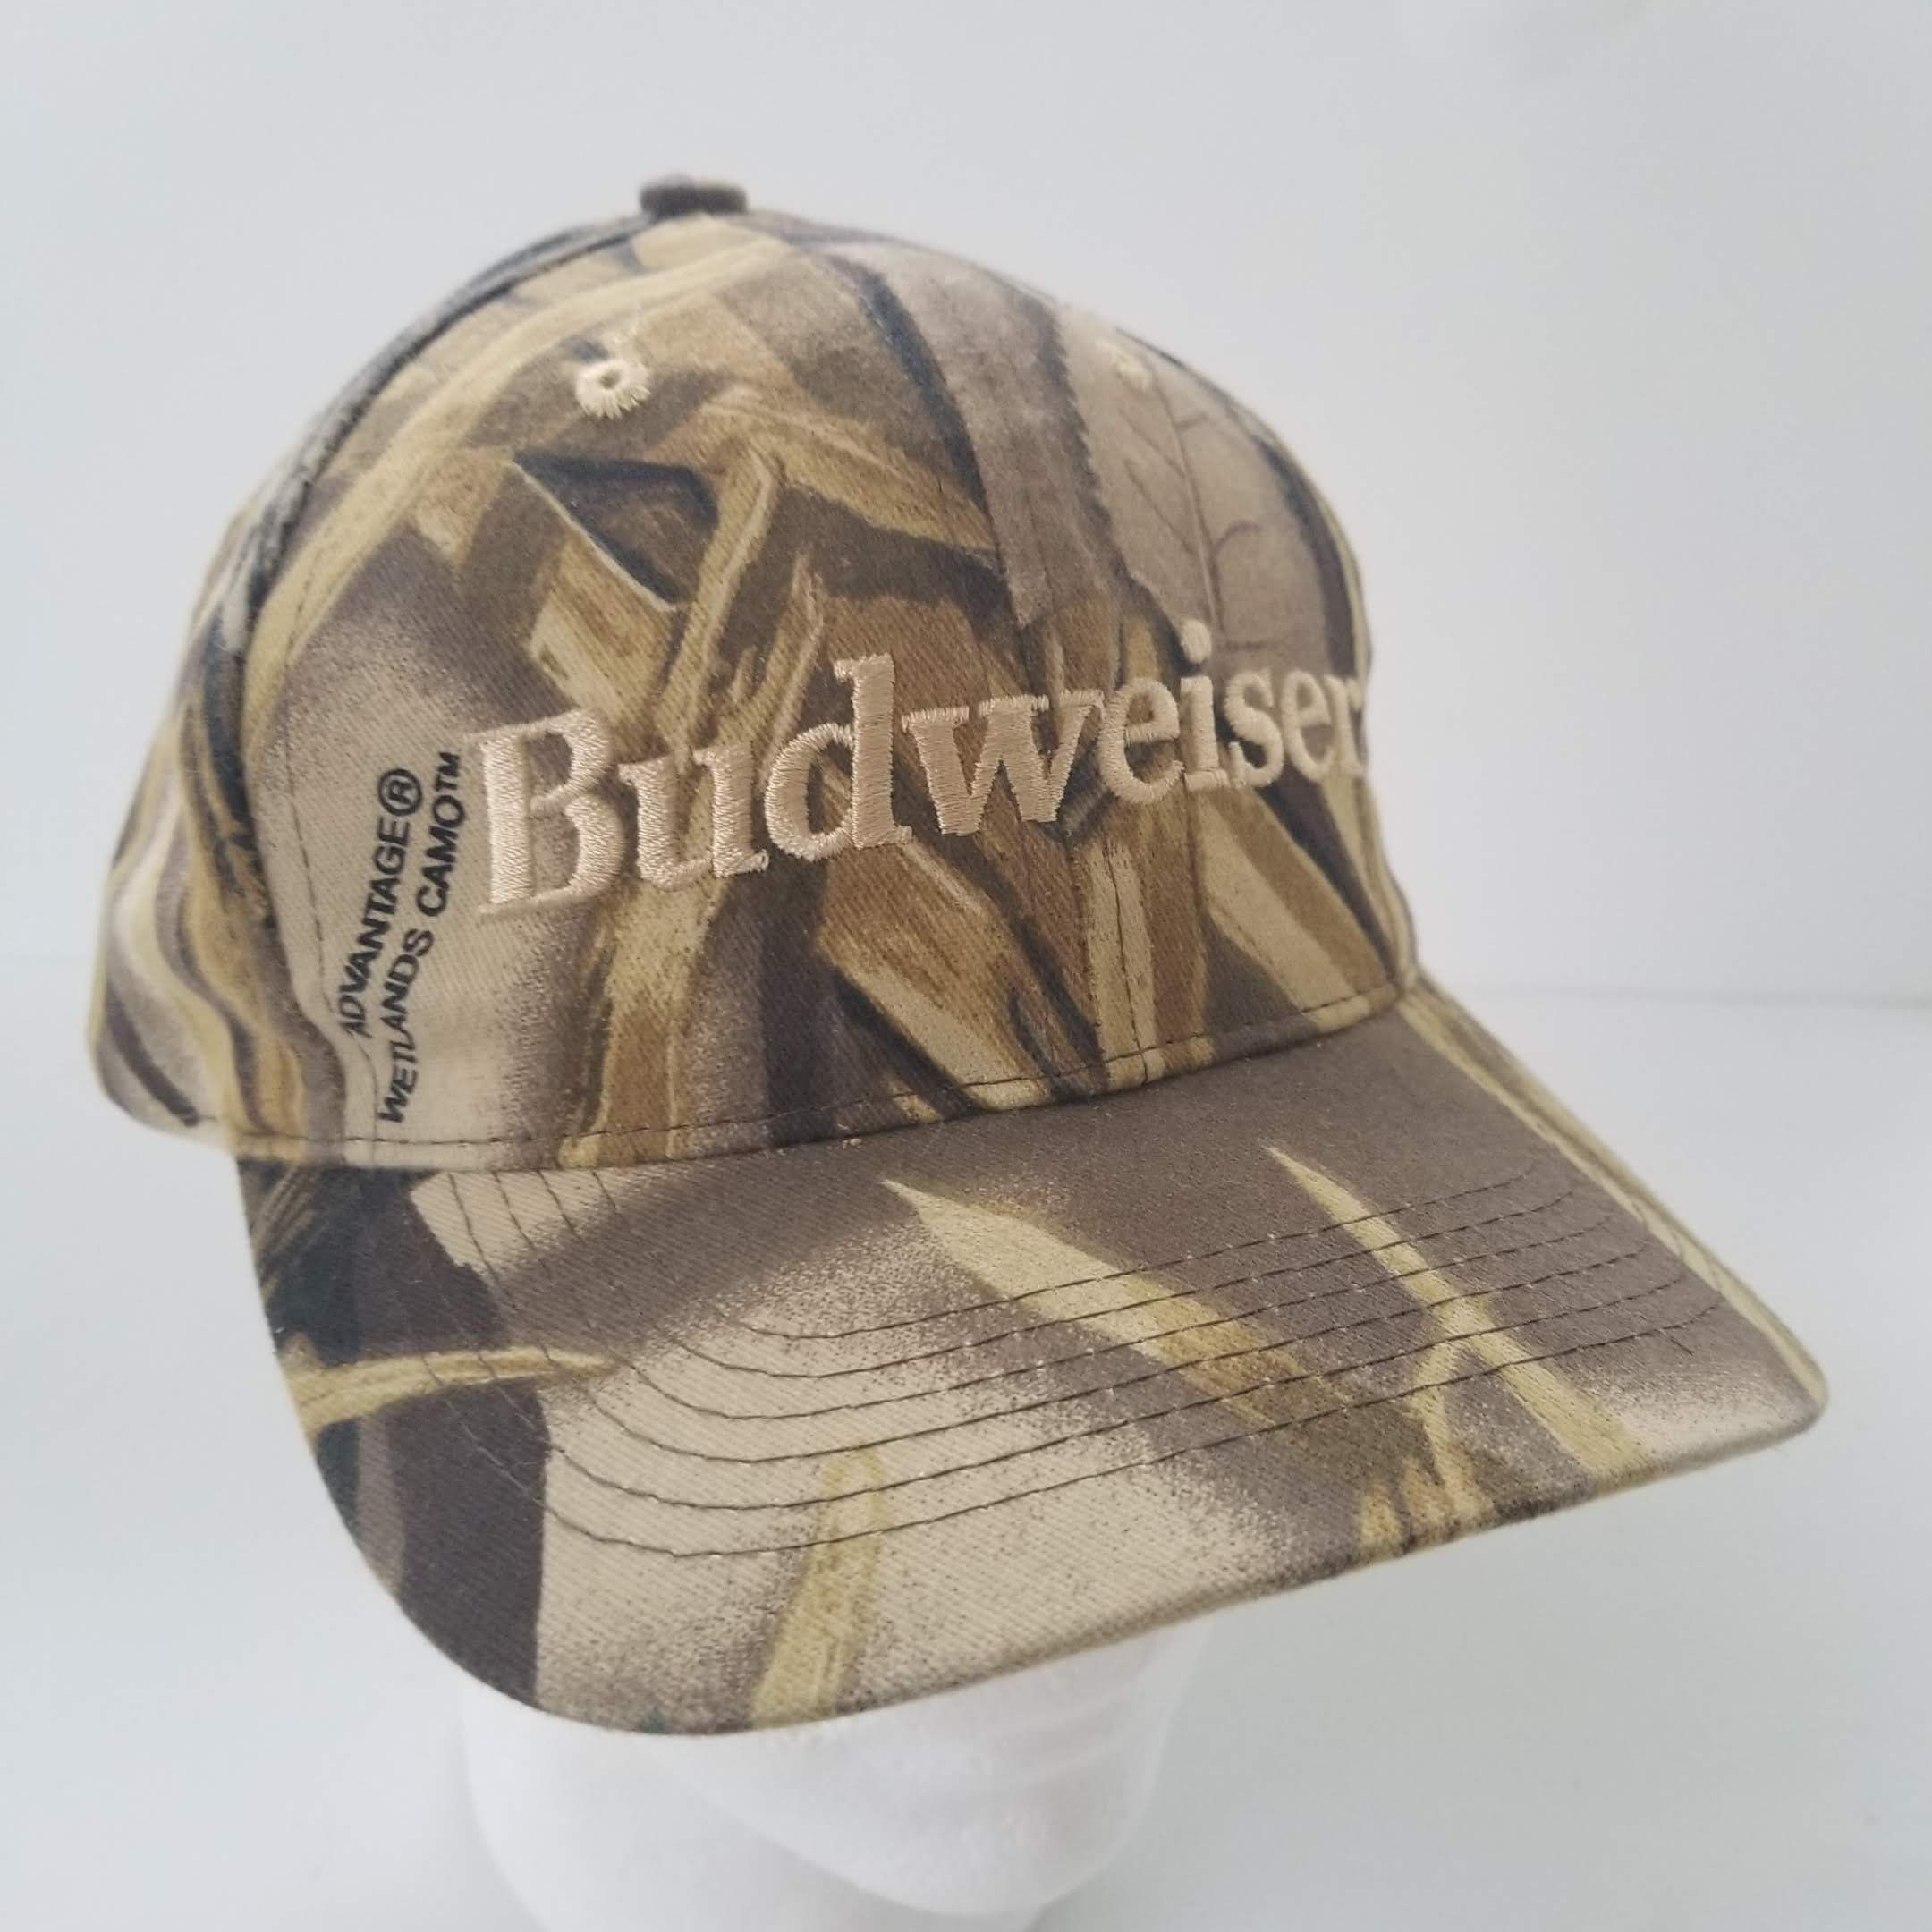 Budweiser Advantage Wetlands Camo Hat Ball Cap Snapback Vintage 90s Hunt  Hunting by TraSheeWomen on Etsy  budweiser  anheuserbusch  camo  snapback   ballcap ... 08ea4438fe7